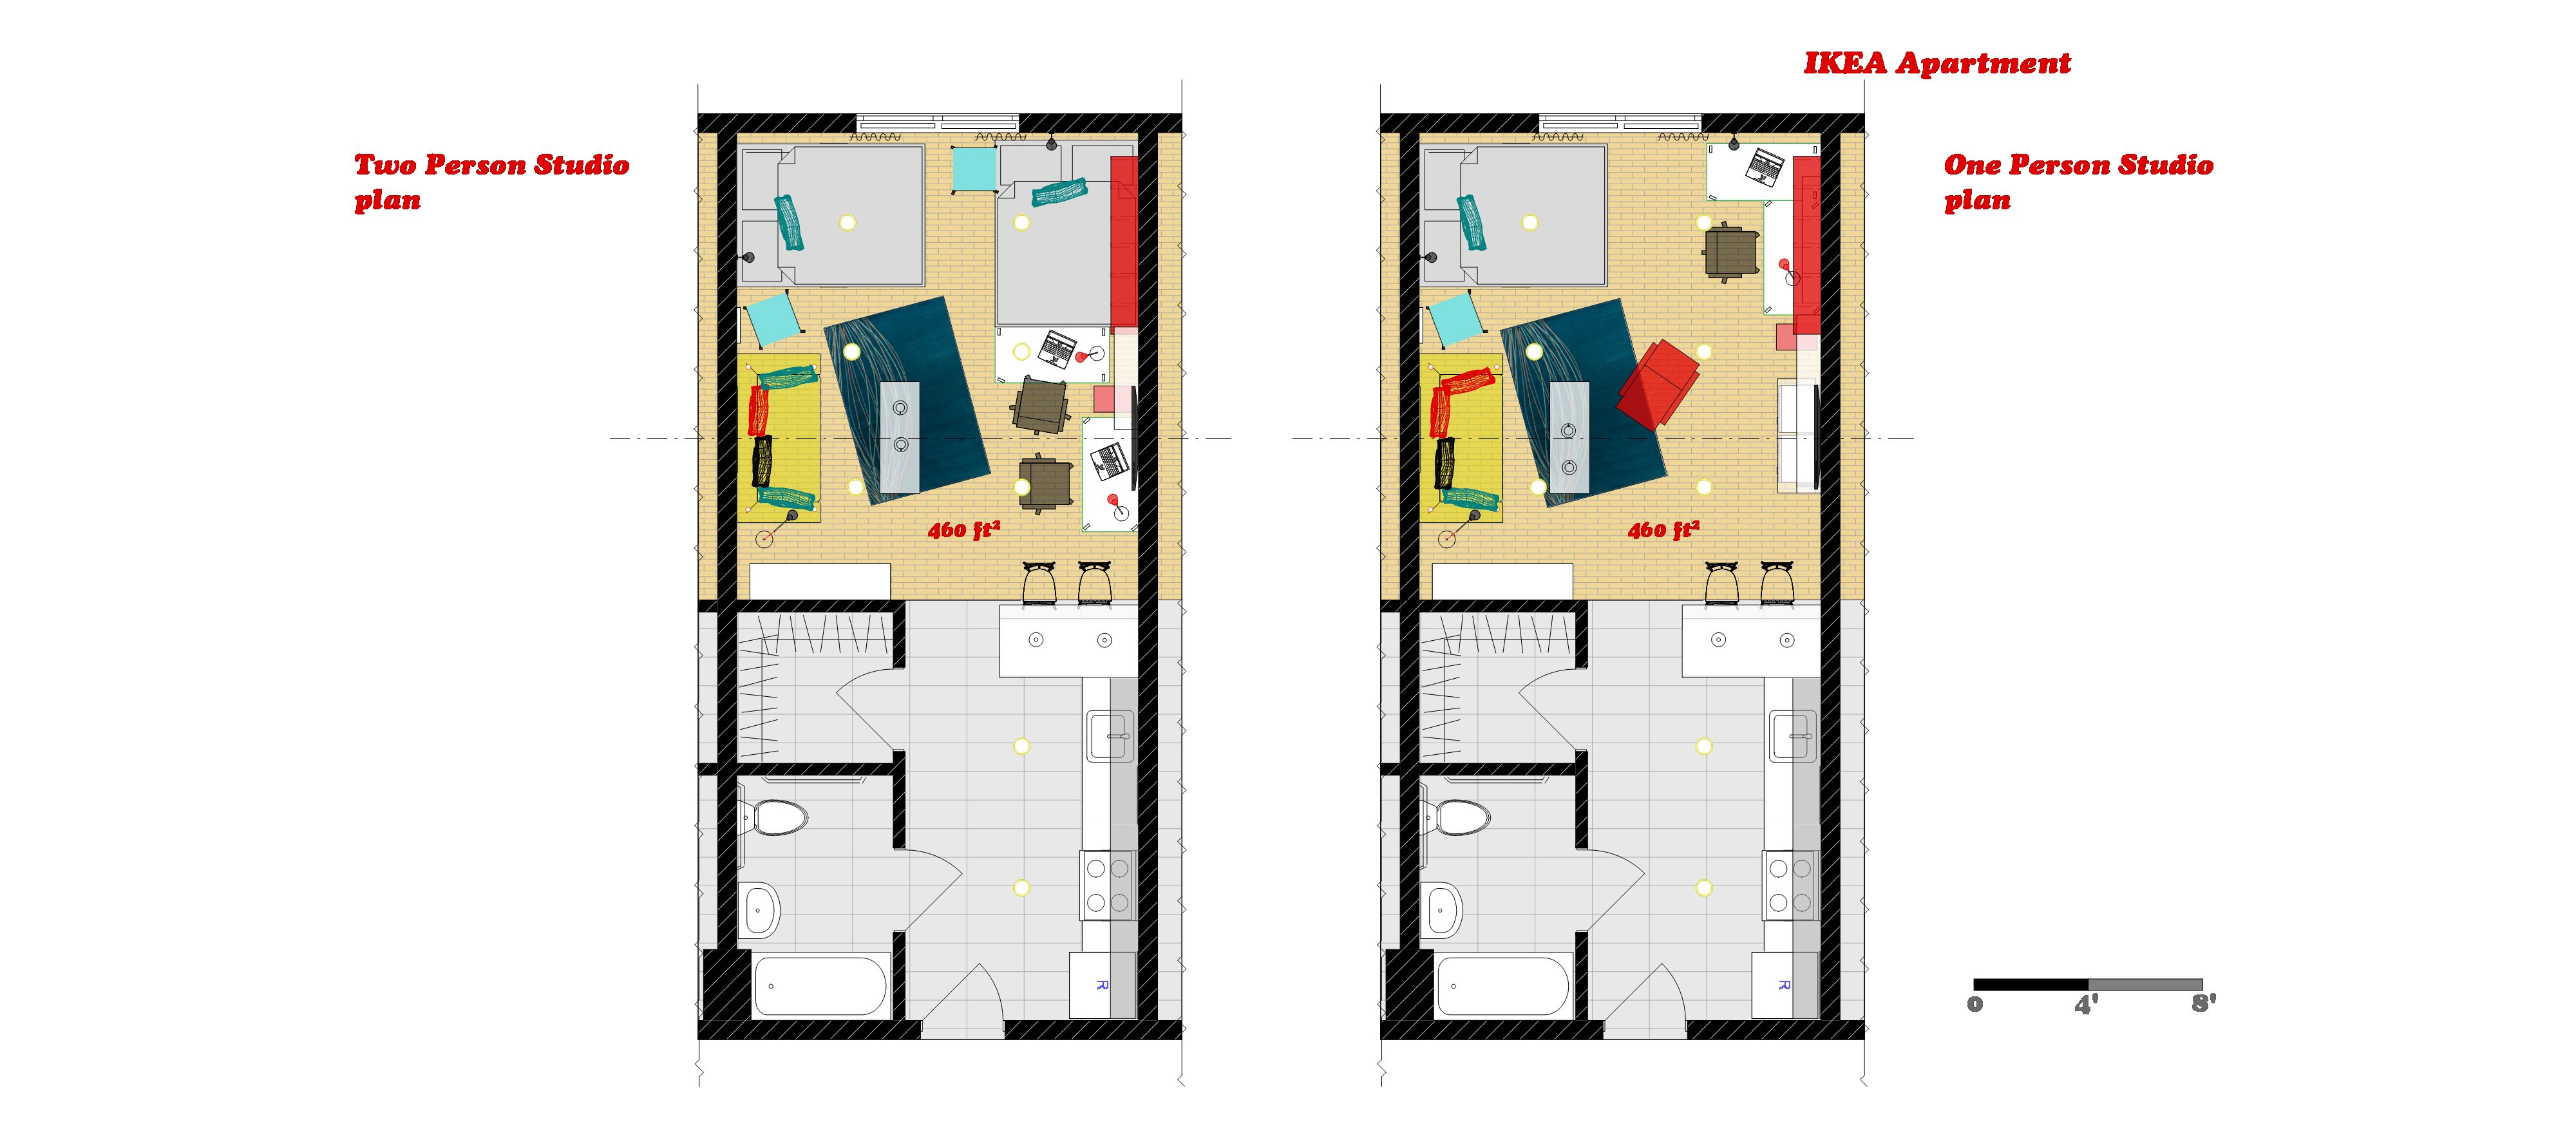 Apartment design ikea home design 2015 for Small apartment design floor plan